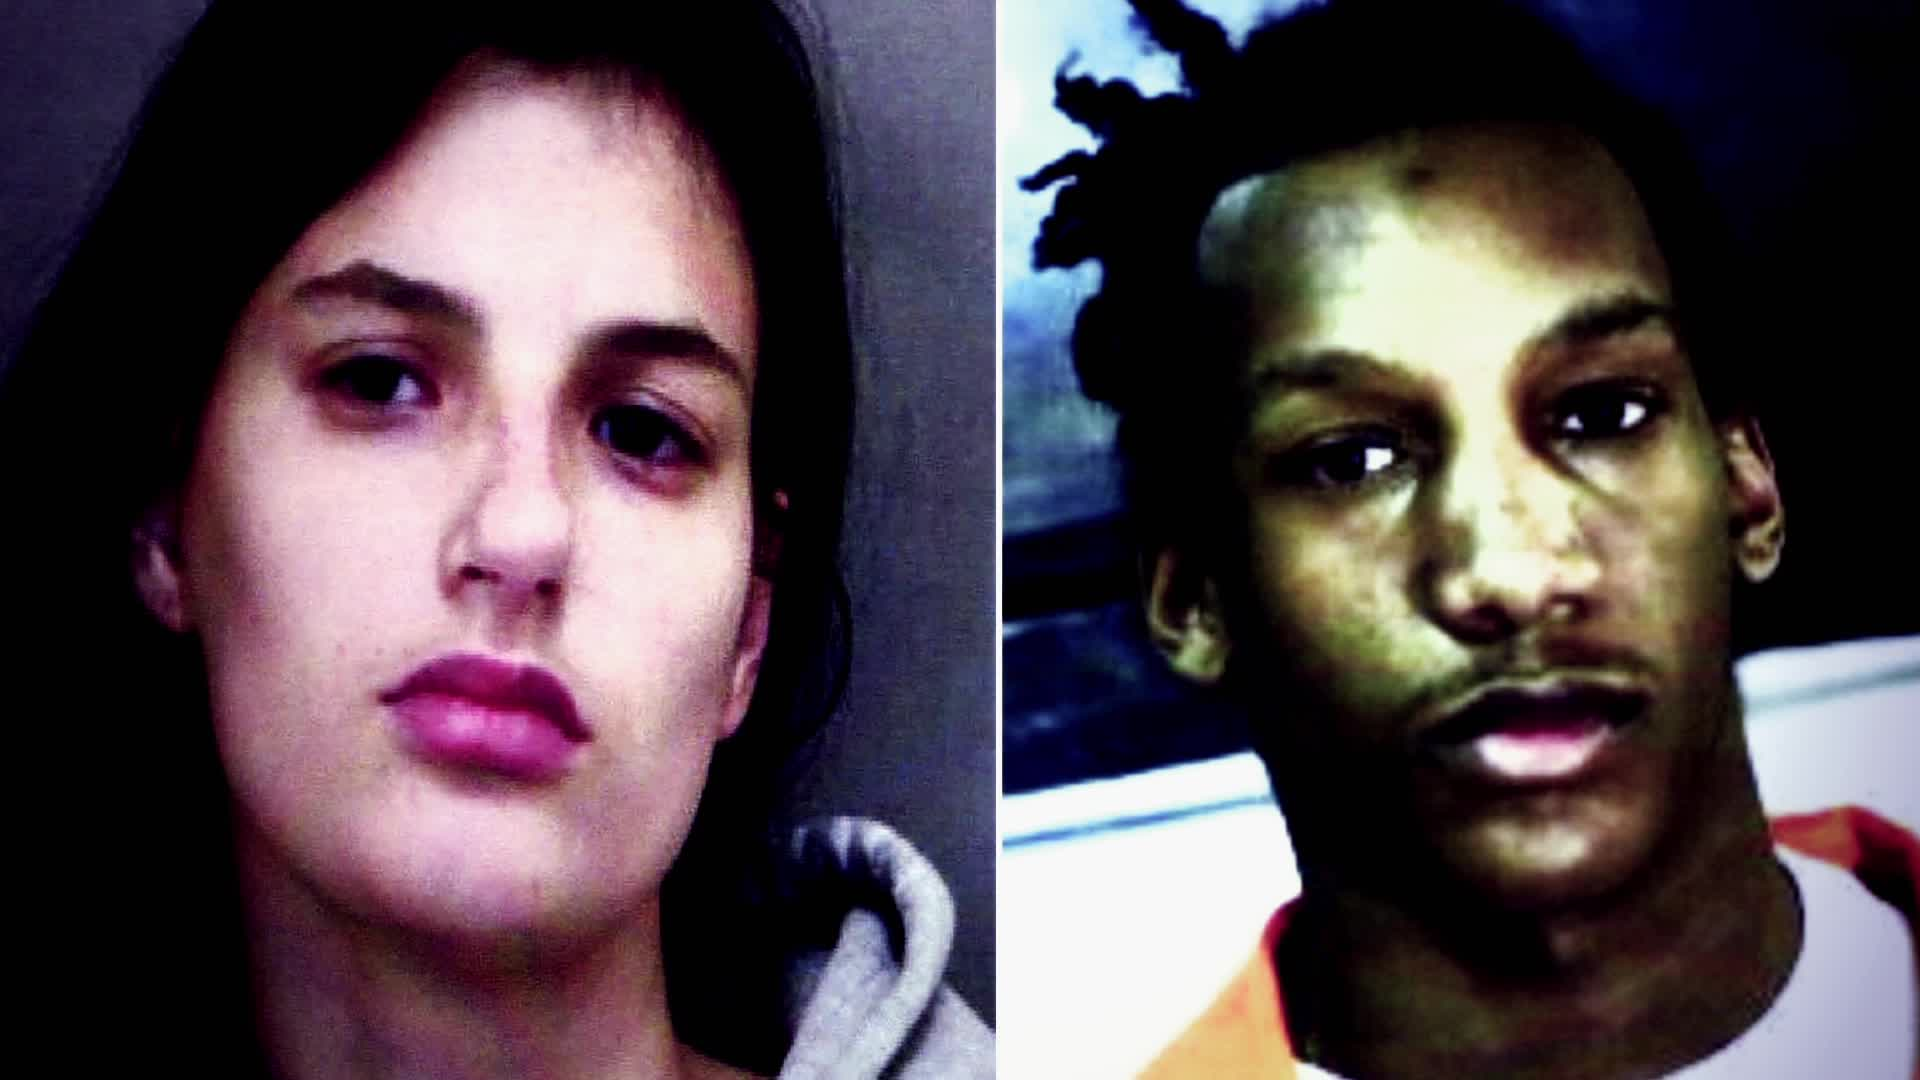 Killer Couples 903: Was It a Botched Robbery?